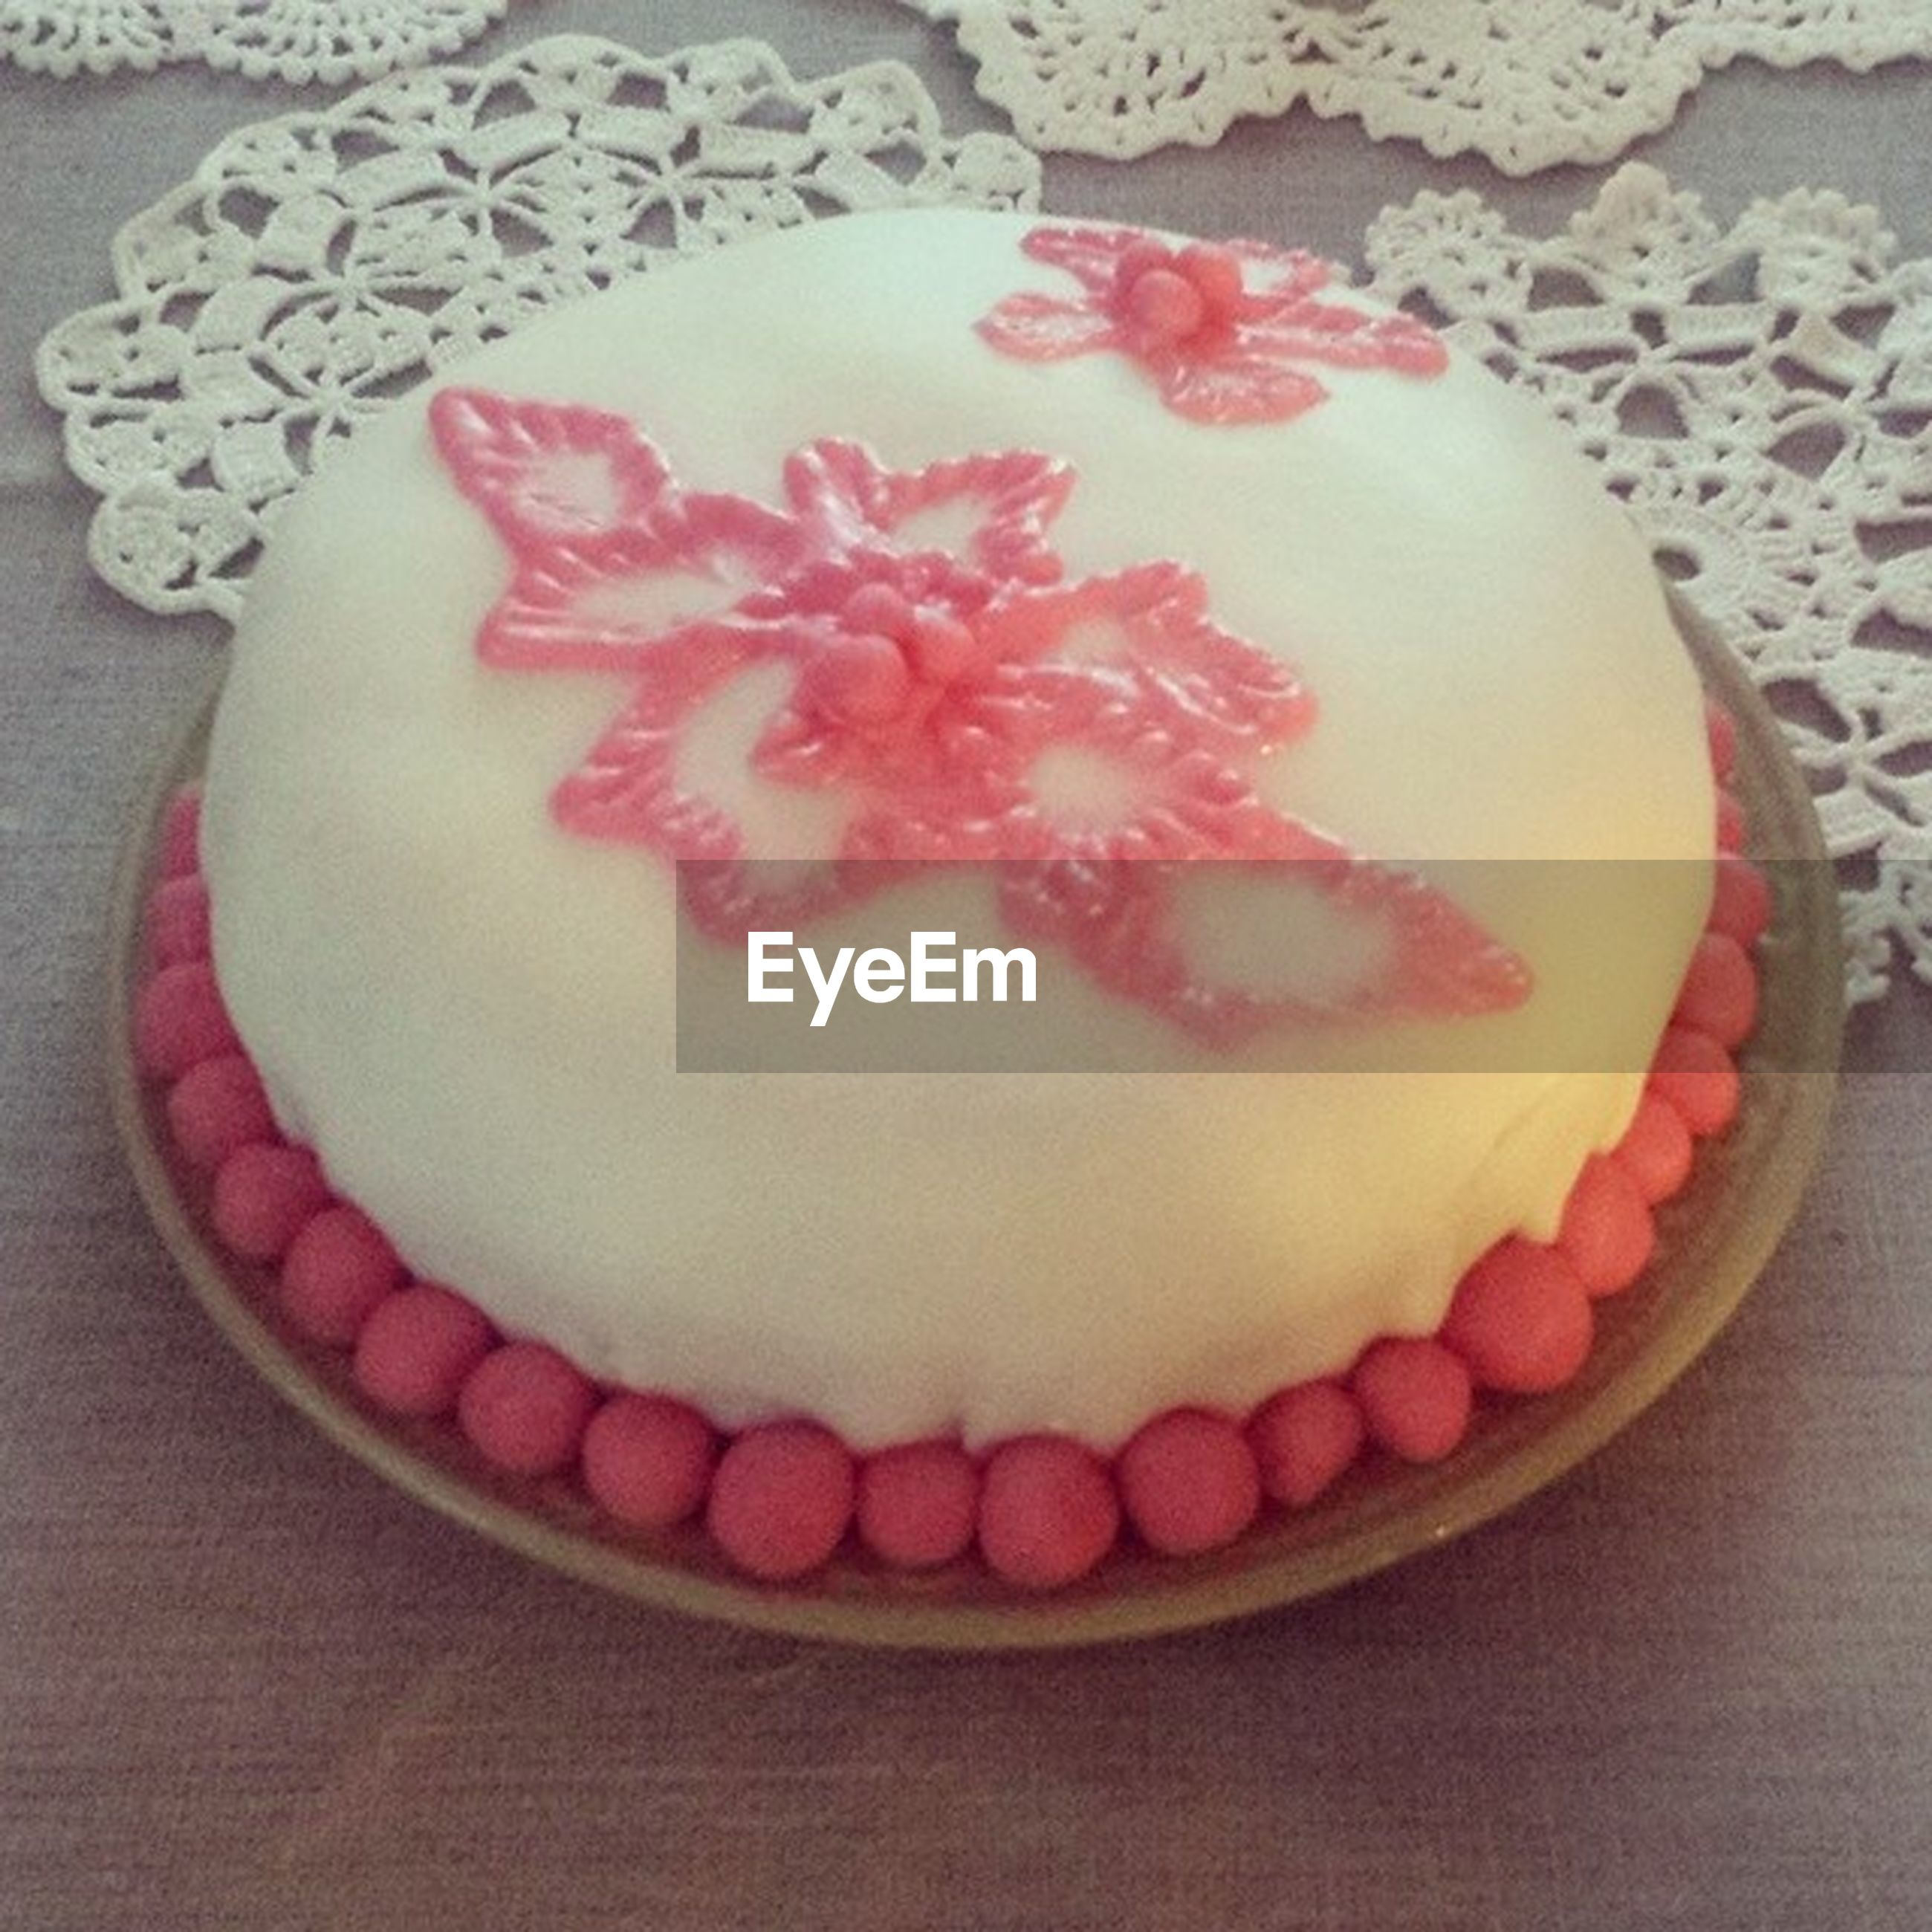 indoors, food and drink, sweet food, freshness, still life, dessert, food, indulgence, table, unhealthy eating, ready-to-eat, cake, close-up, high angle view, temptation, plate, heart shape, decoration, no people, chocolate